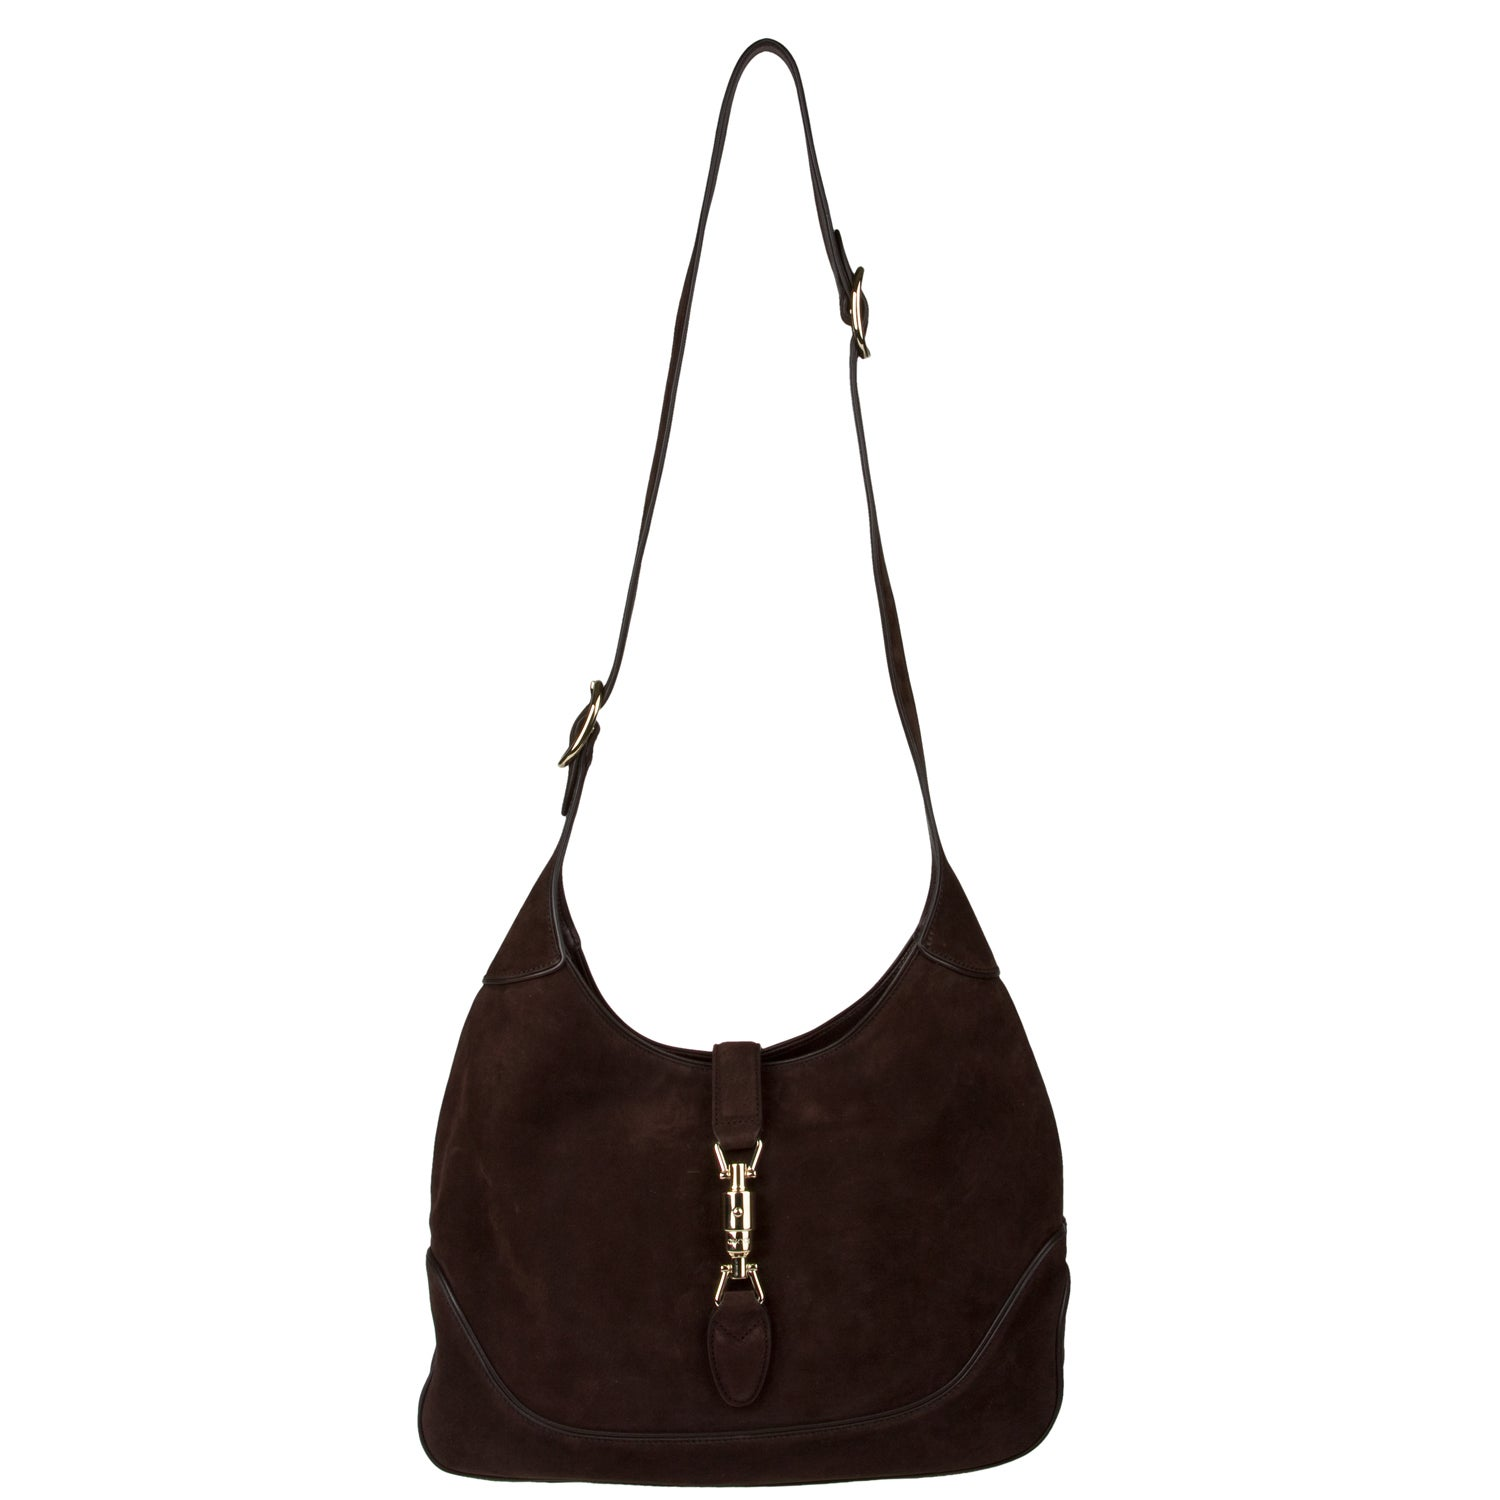 Gucci Chocolate Suede Hobo Handbag